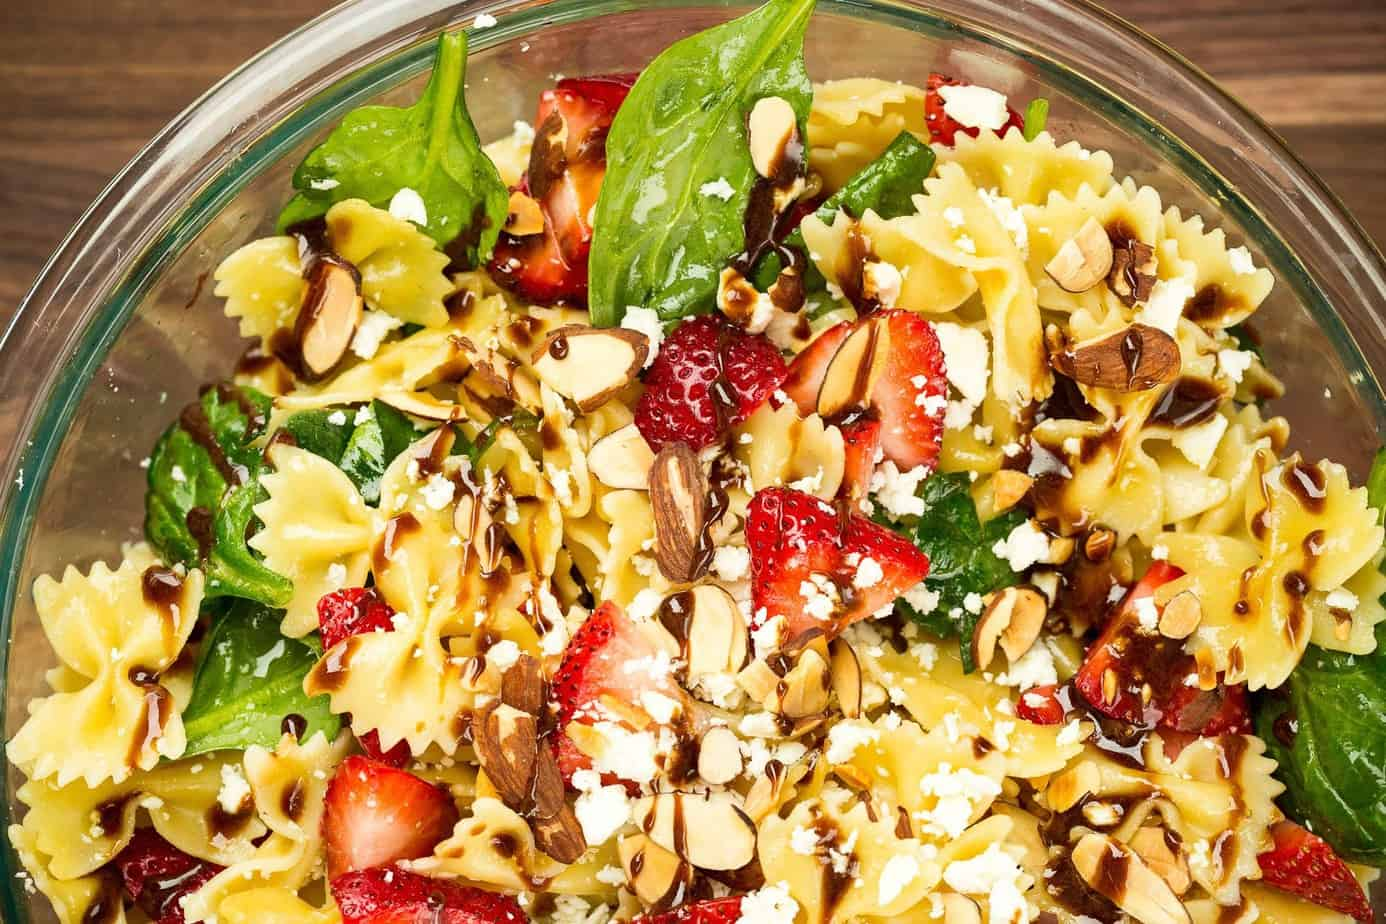 A bowl of strawberry pasta salad with balsamic dressing